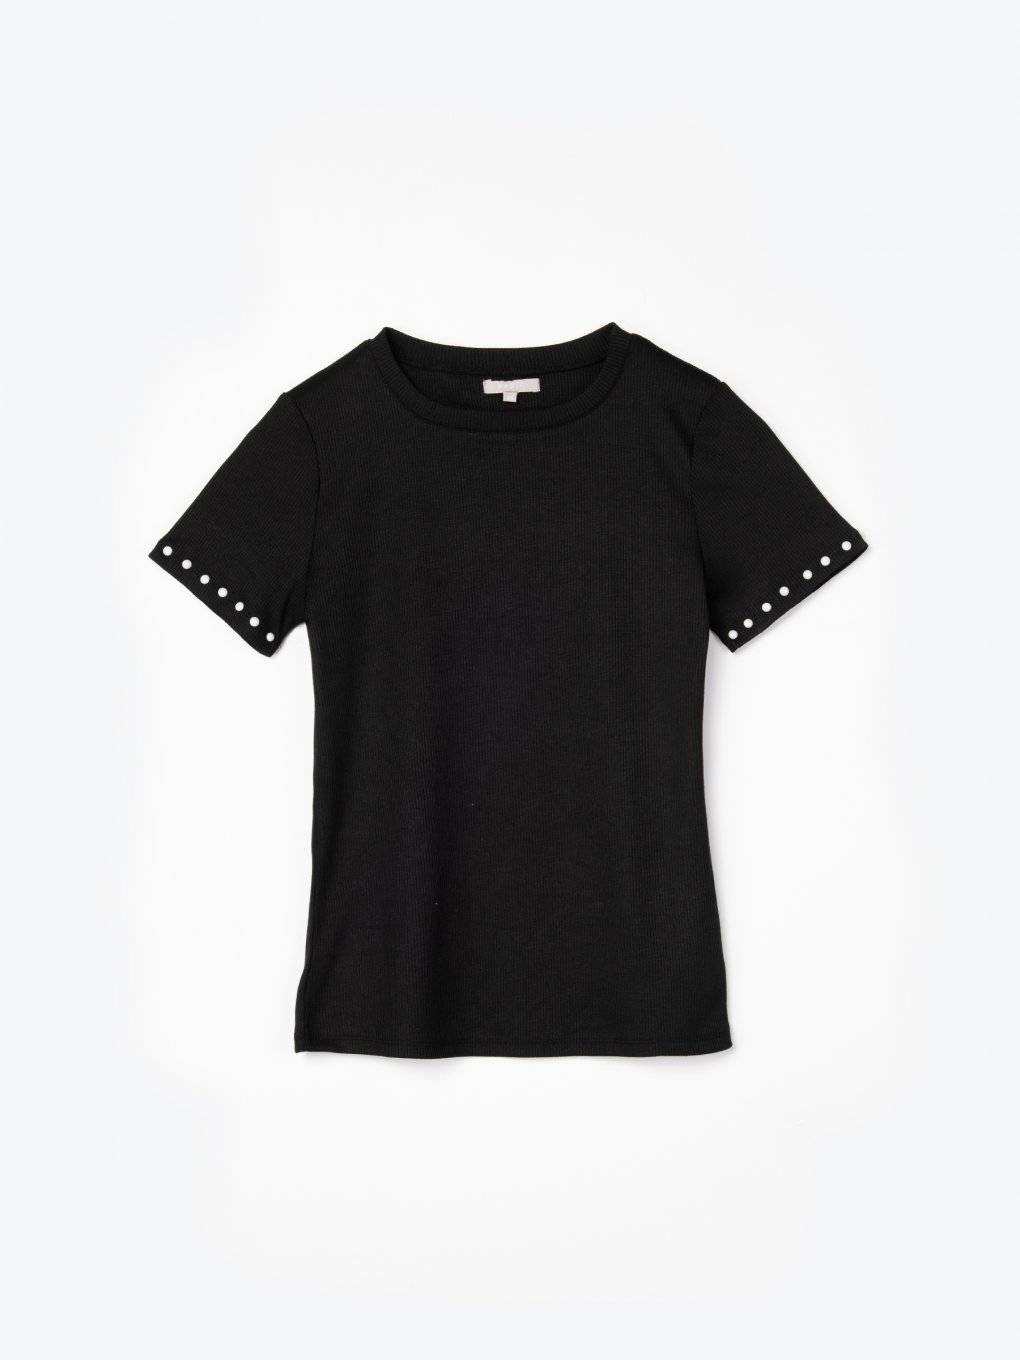 Ribbed t-shirt with pearls